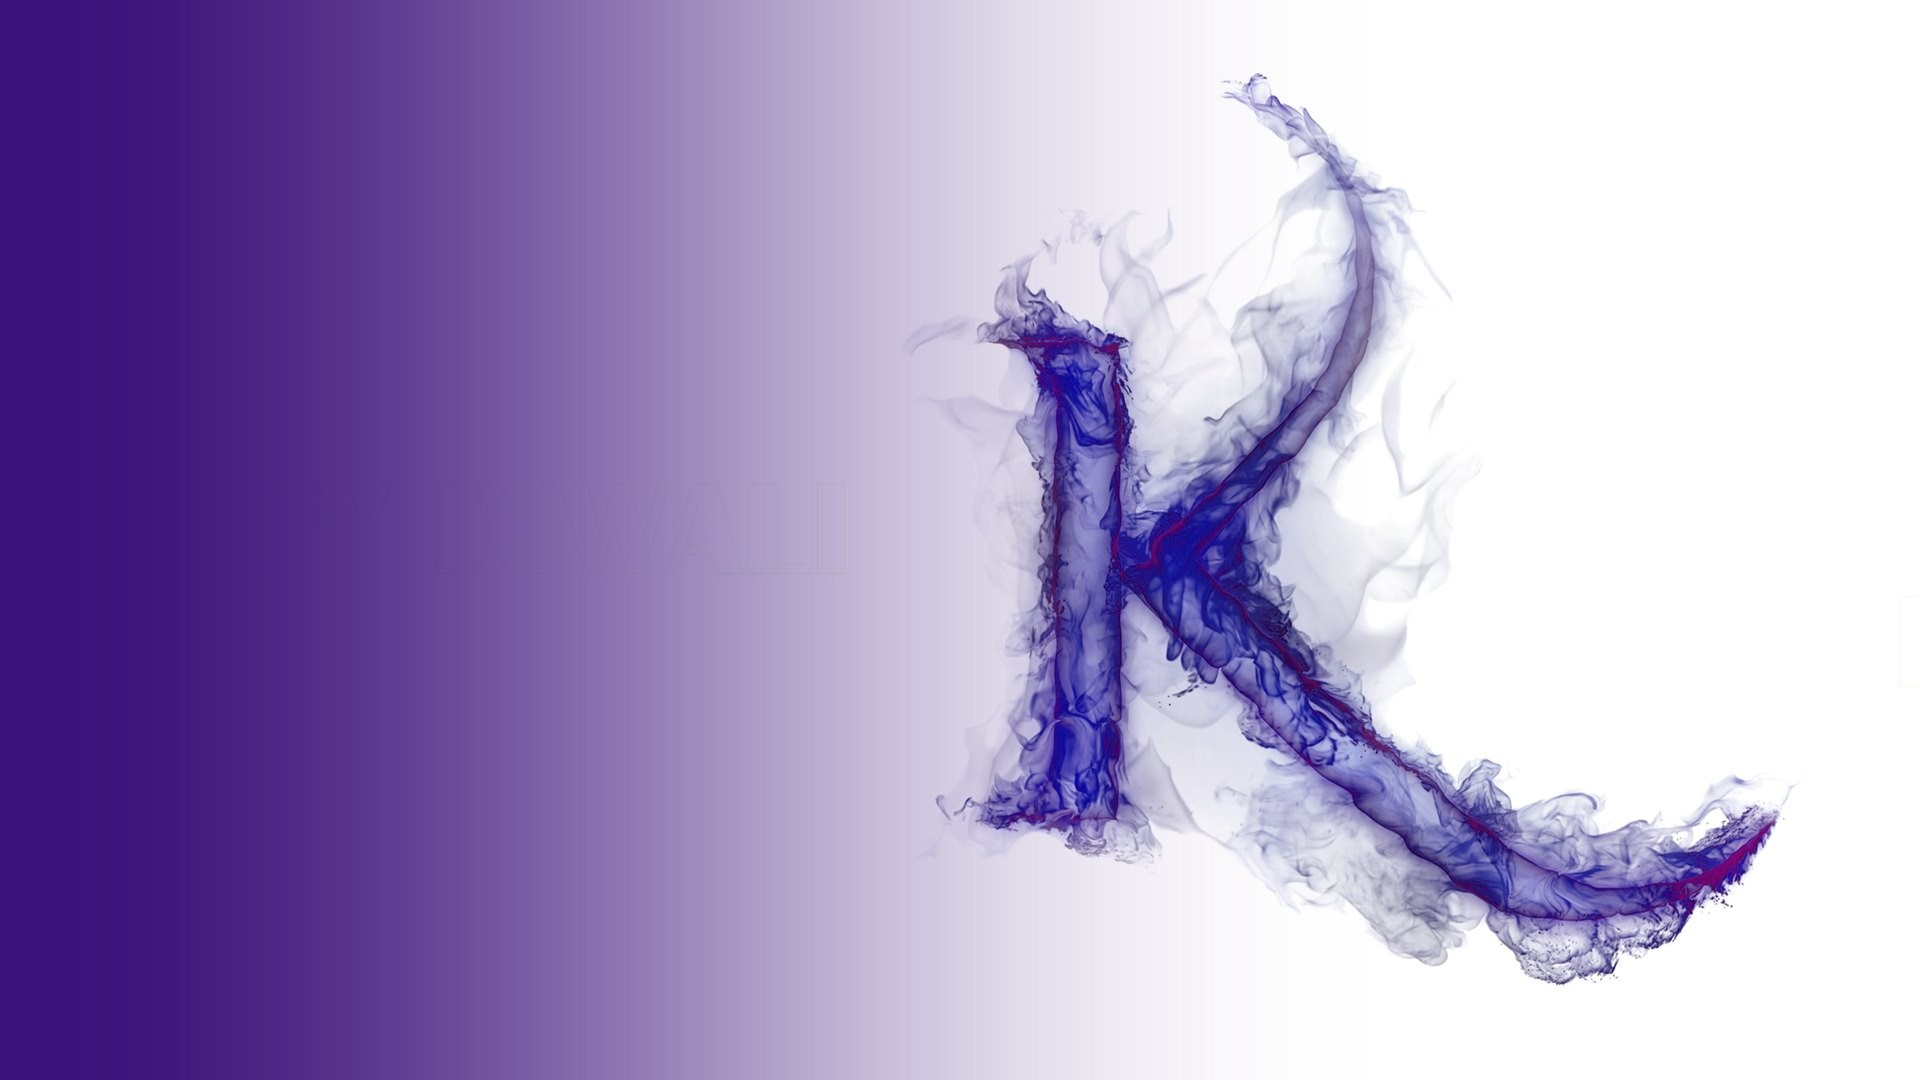 Letter k wallpapers 41 images 1920x1080 0 letter s wallpapers group smoke letters k alphabet hd wallpaper 04511 thecheapjerseys Choice Image